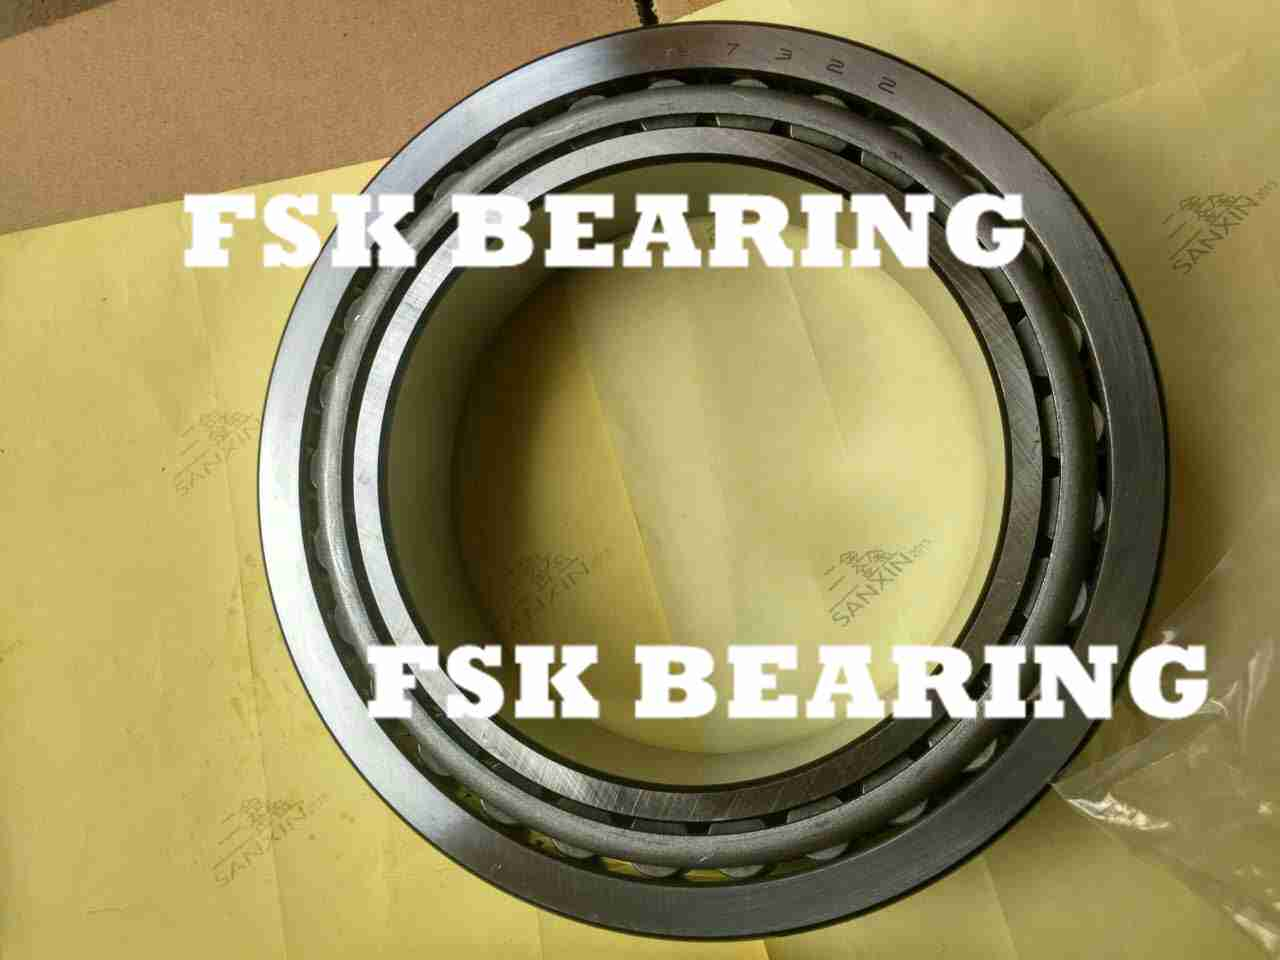 L357010/49 Tapered Roller Bearing 304.8x393.7x50.8mm